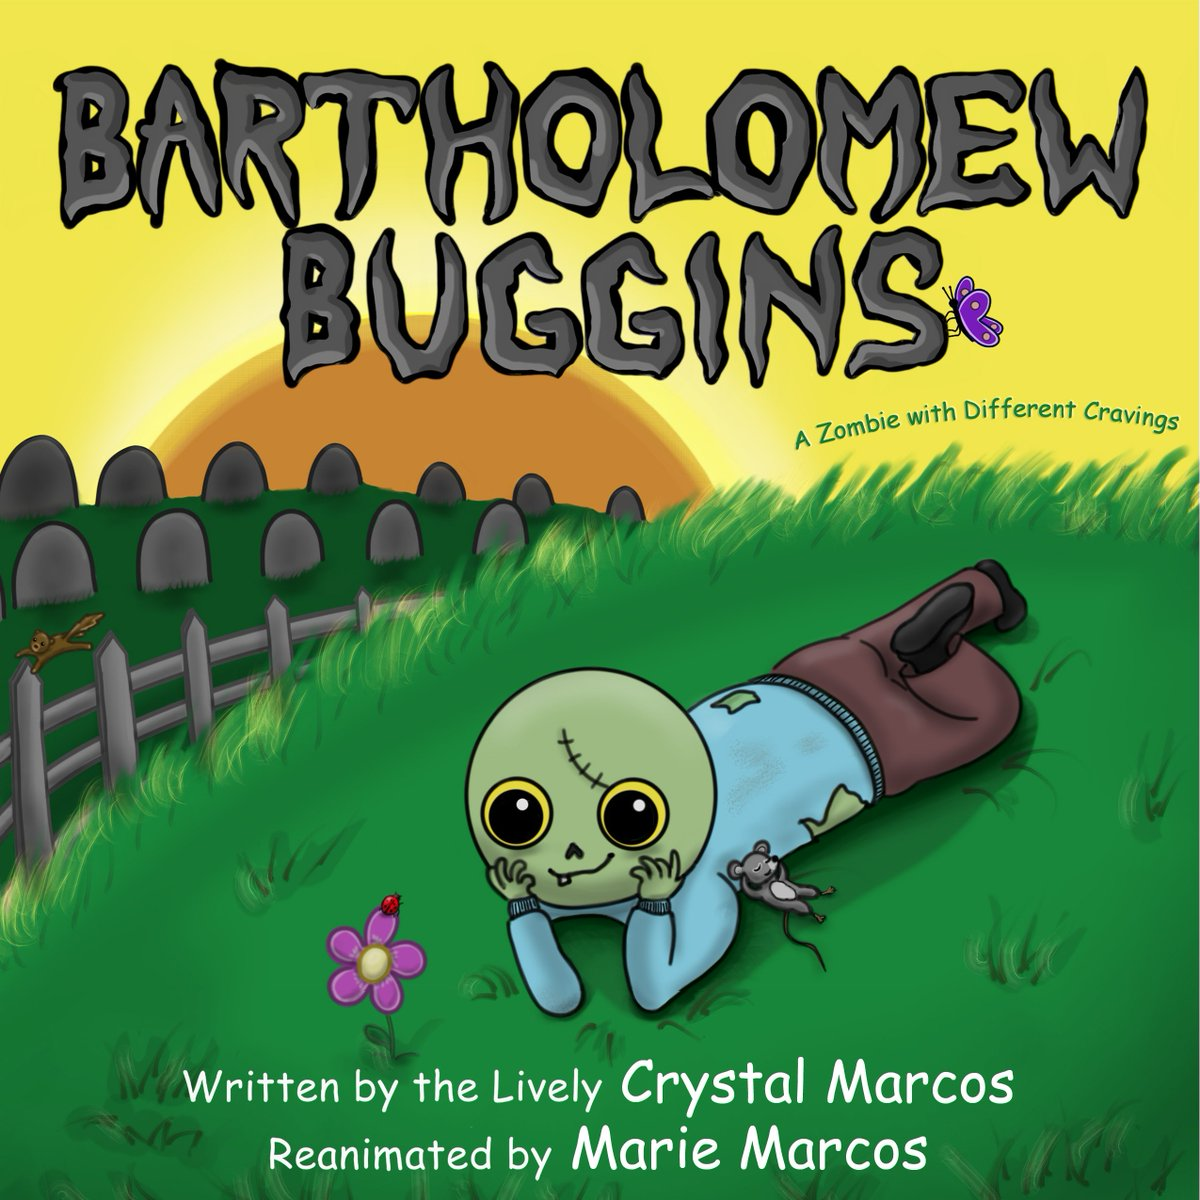 This humorous, rhyming picture book by @ CrystalMarcos features a distinguished little zombie who just wants to be your friend.   FREE on KindleUnlimited.   IARTG ASMSG kidsbooks childrensbooks picturebooks  Kindle books ebooks #zombies #fantasy  http://viewbook.at/AmazonBBugginspic.twitter.com/RcHCQzyJLl